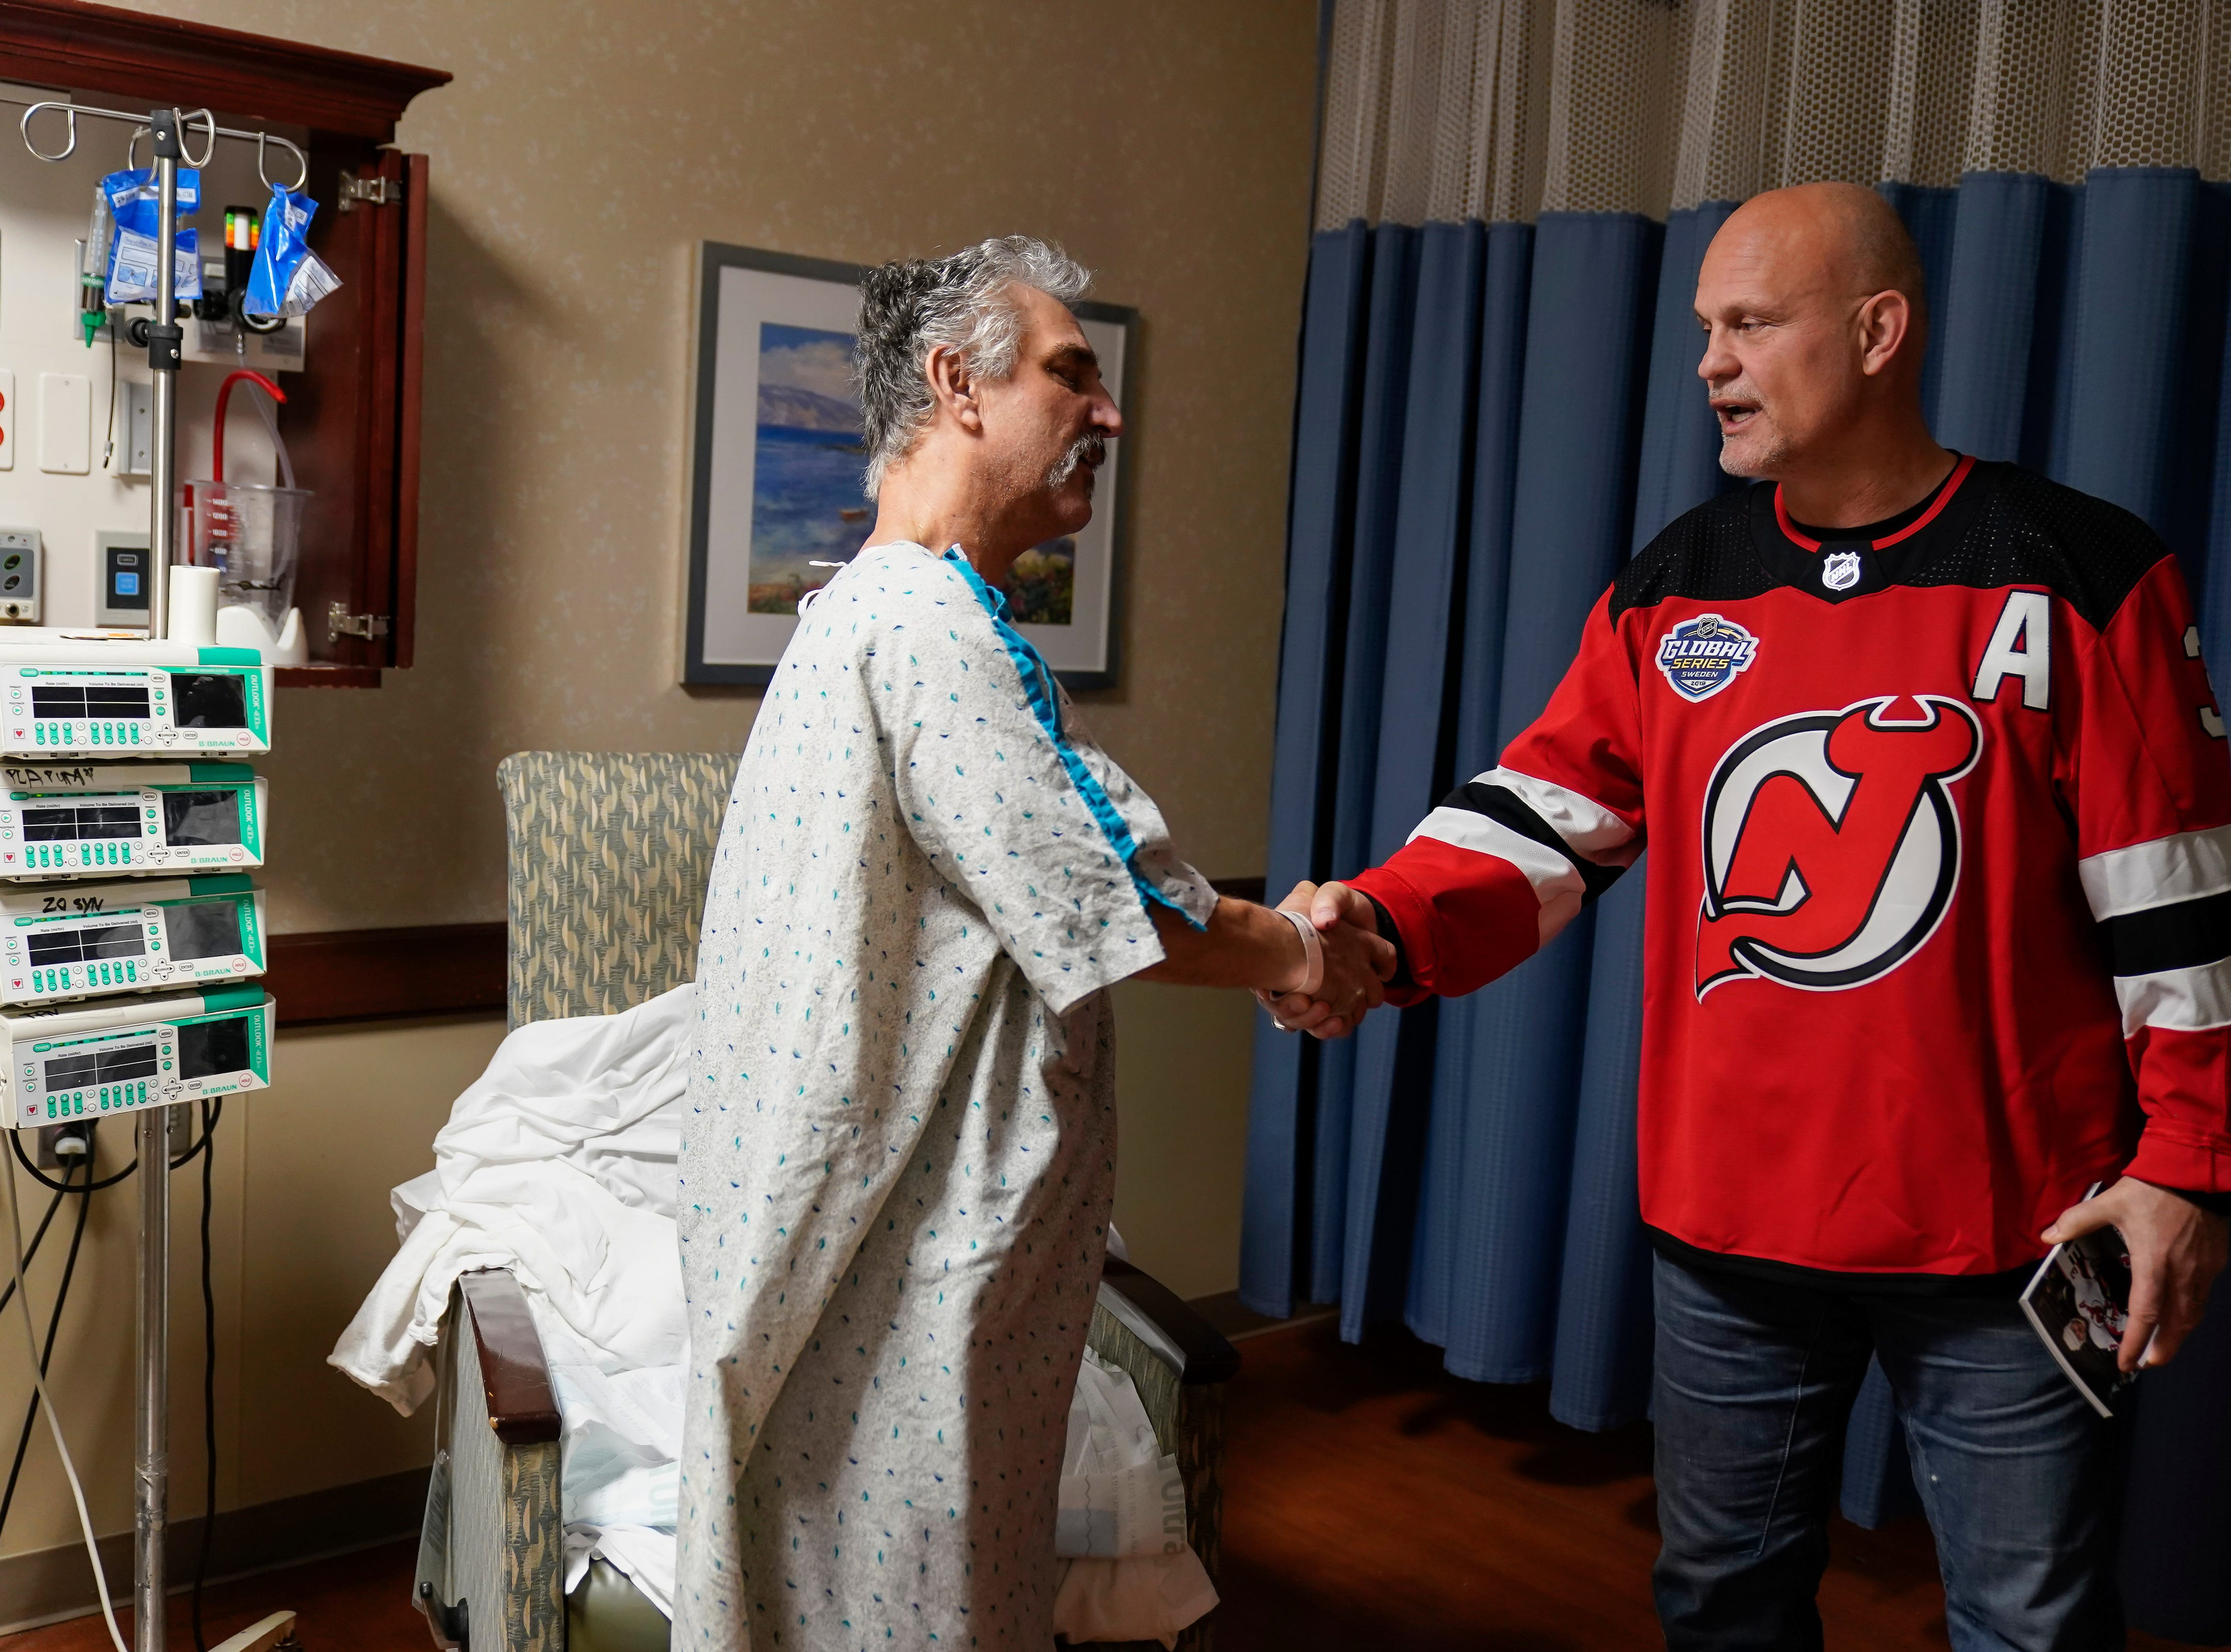 Three-time New Jersey Devils Stanley Cup winner Ken Danyeko was one of several Devils players, alumni and staff who visitedRWJ Barnabas Health sites Monday. At RWJUH Somerset, Daneyko charmed visitors, patients, such as chris Corra of Raritan, and staff alike visiting several oncology units at both the Steeplechase Cancer Center and Paul R.NardoniOncology Pavilionof the main hospital.